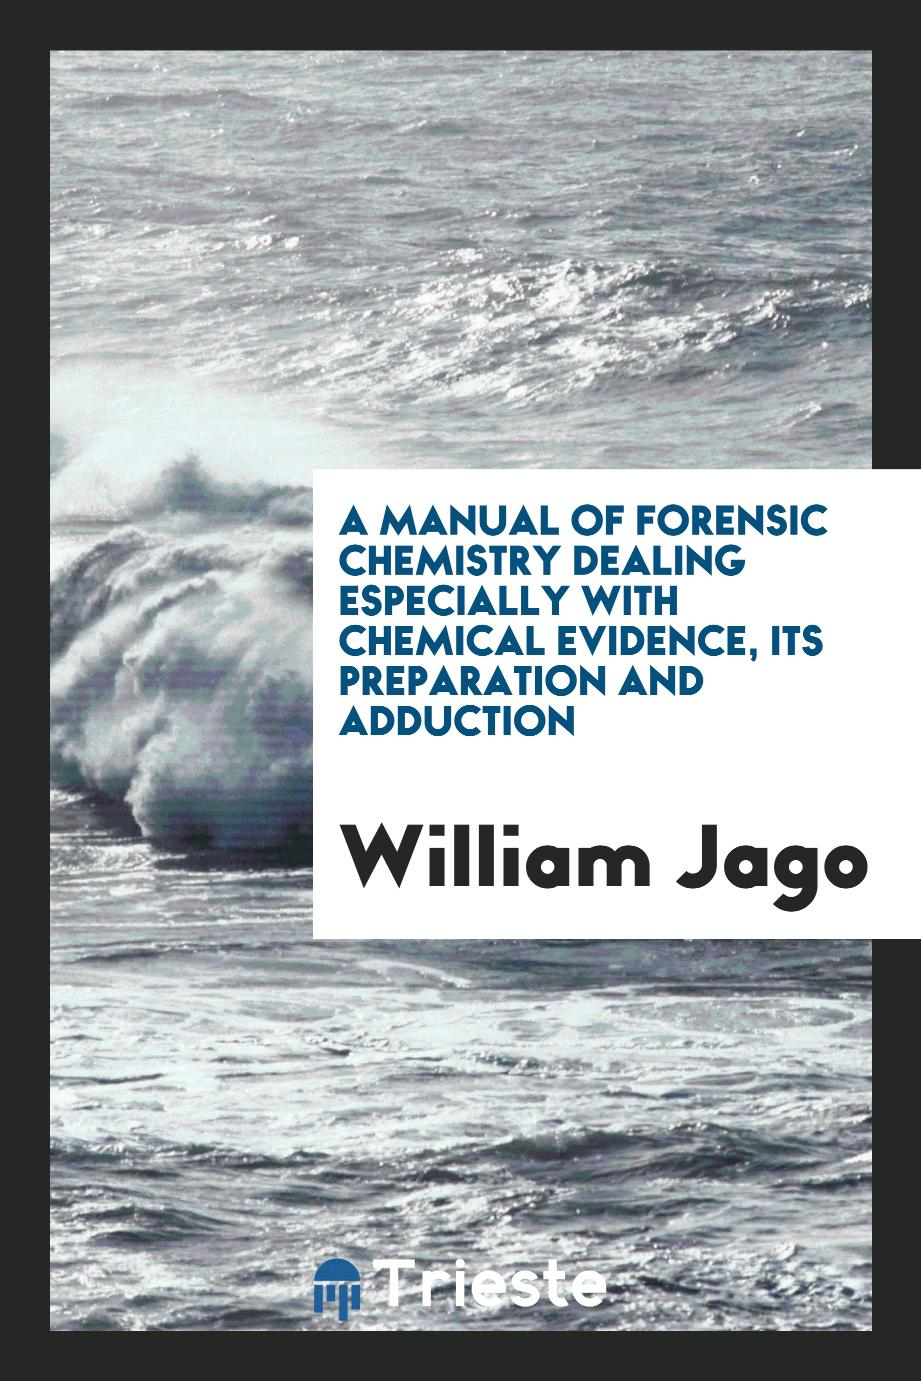 A manual of forensic chemistry dealing especially with chemical evidence, its preparation and adduction